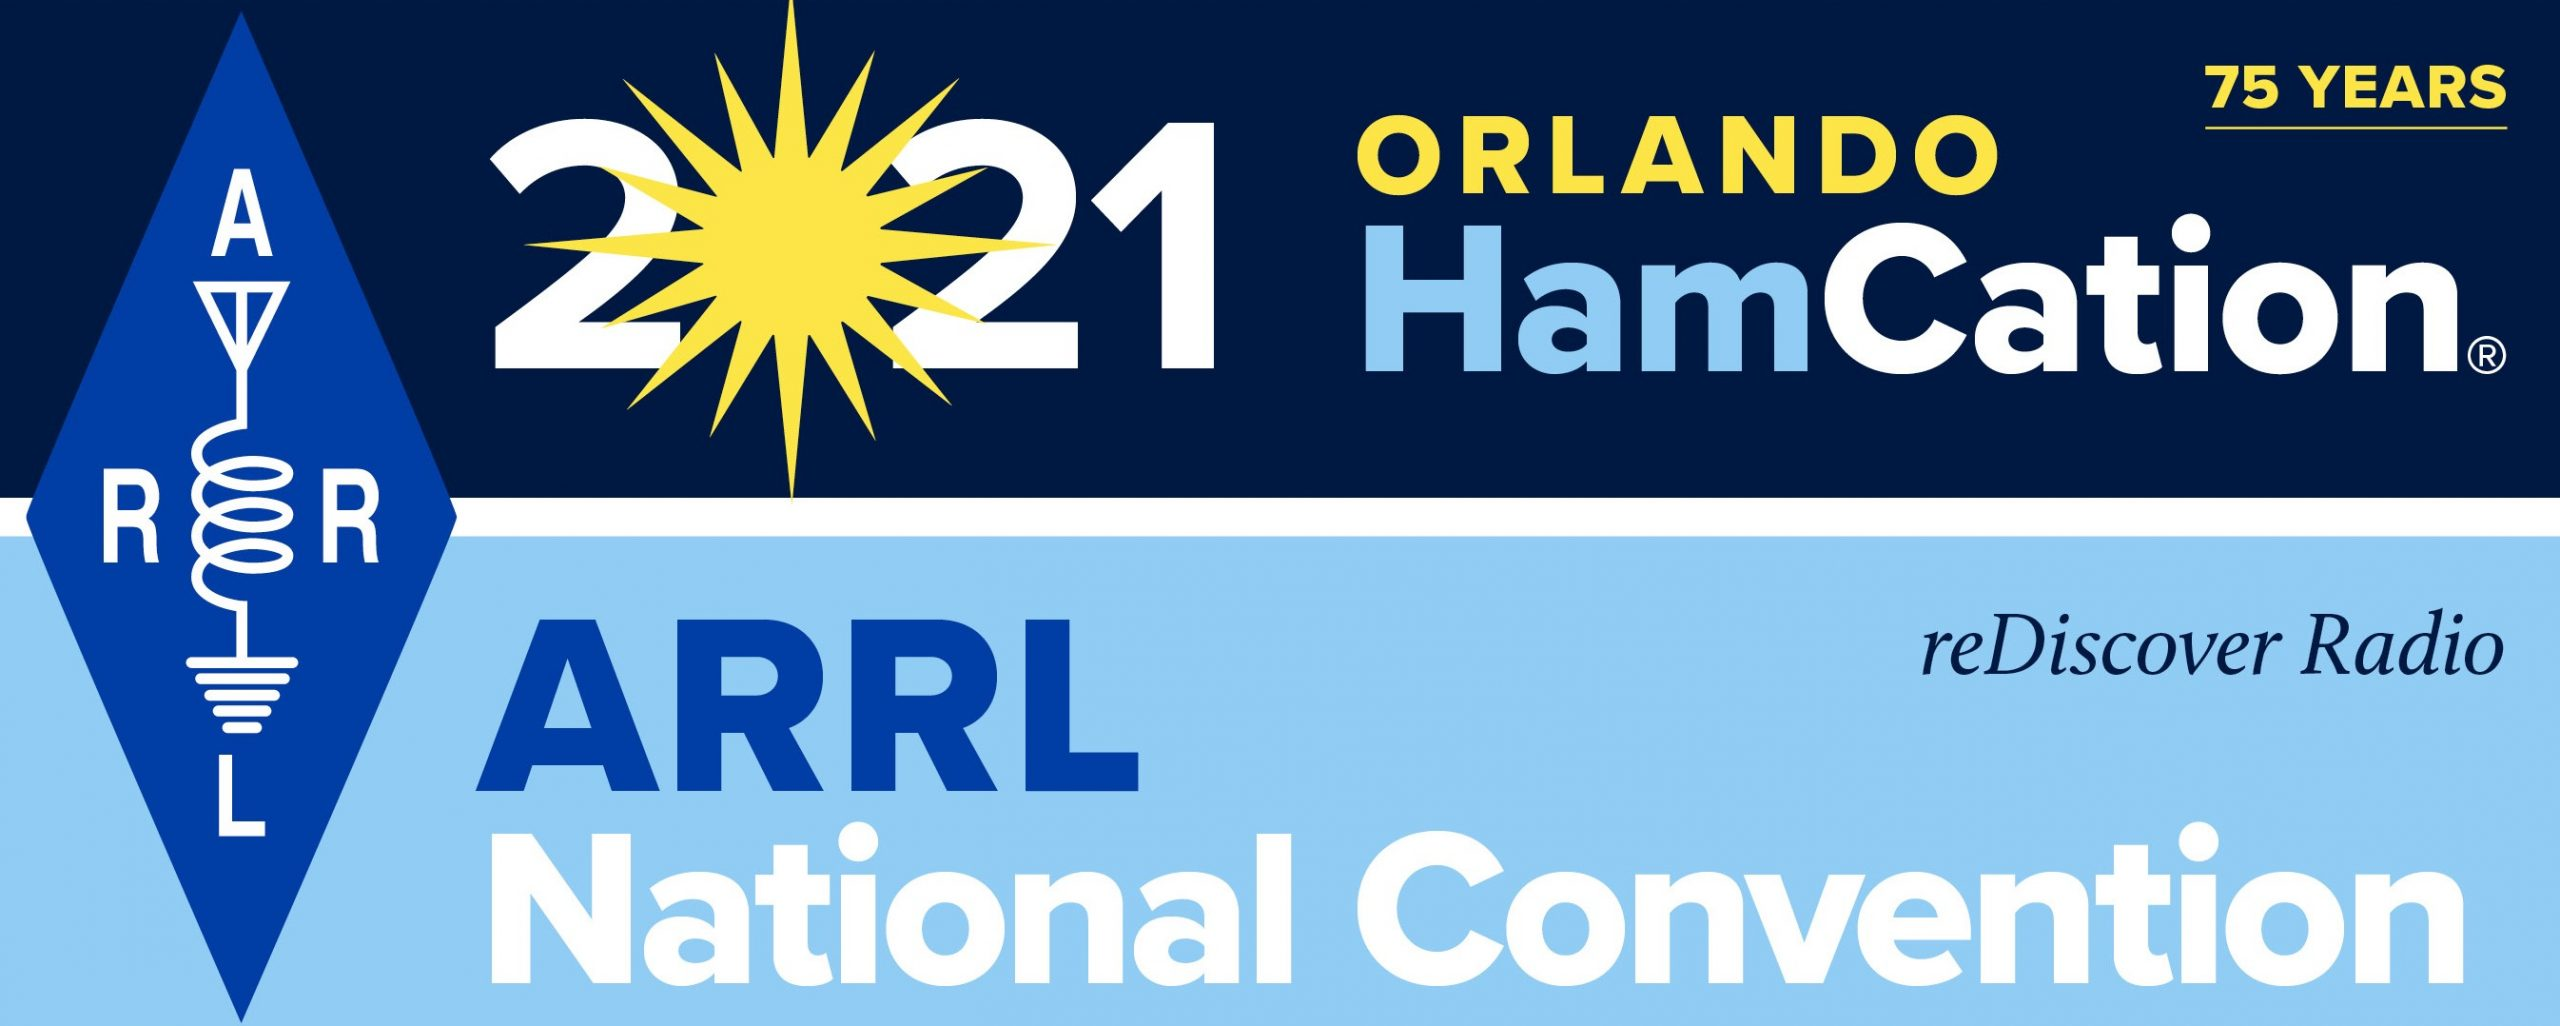 ARRL to Hold National Convention at Orlando HamCation in February 2021